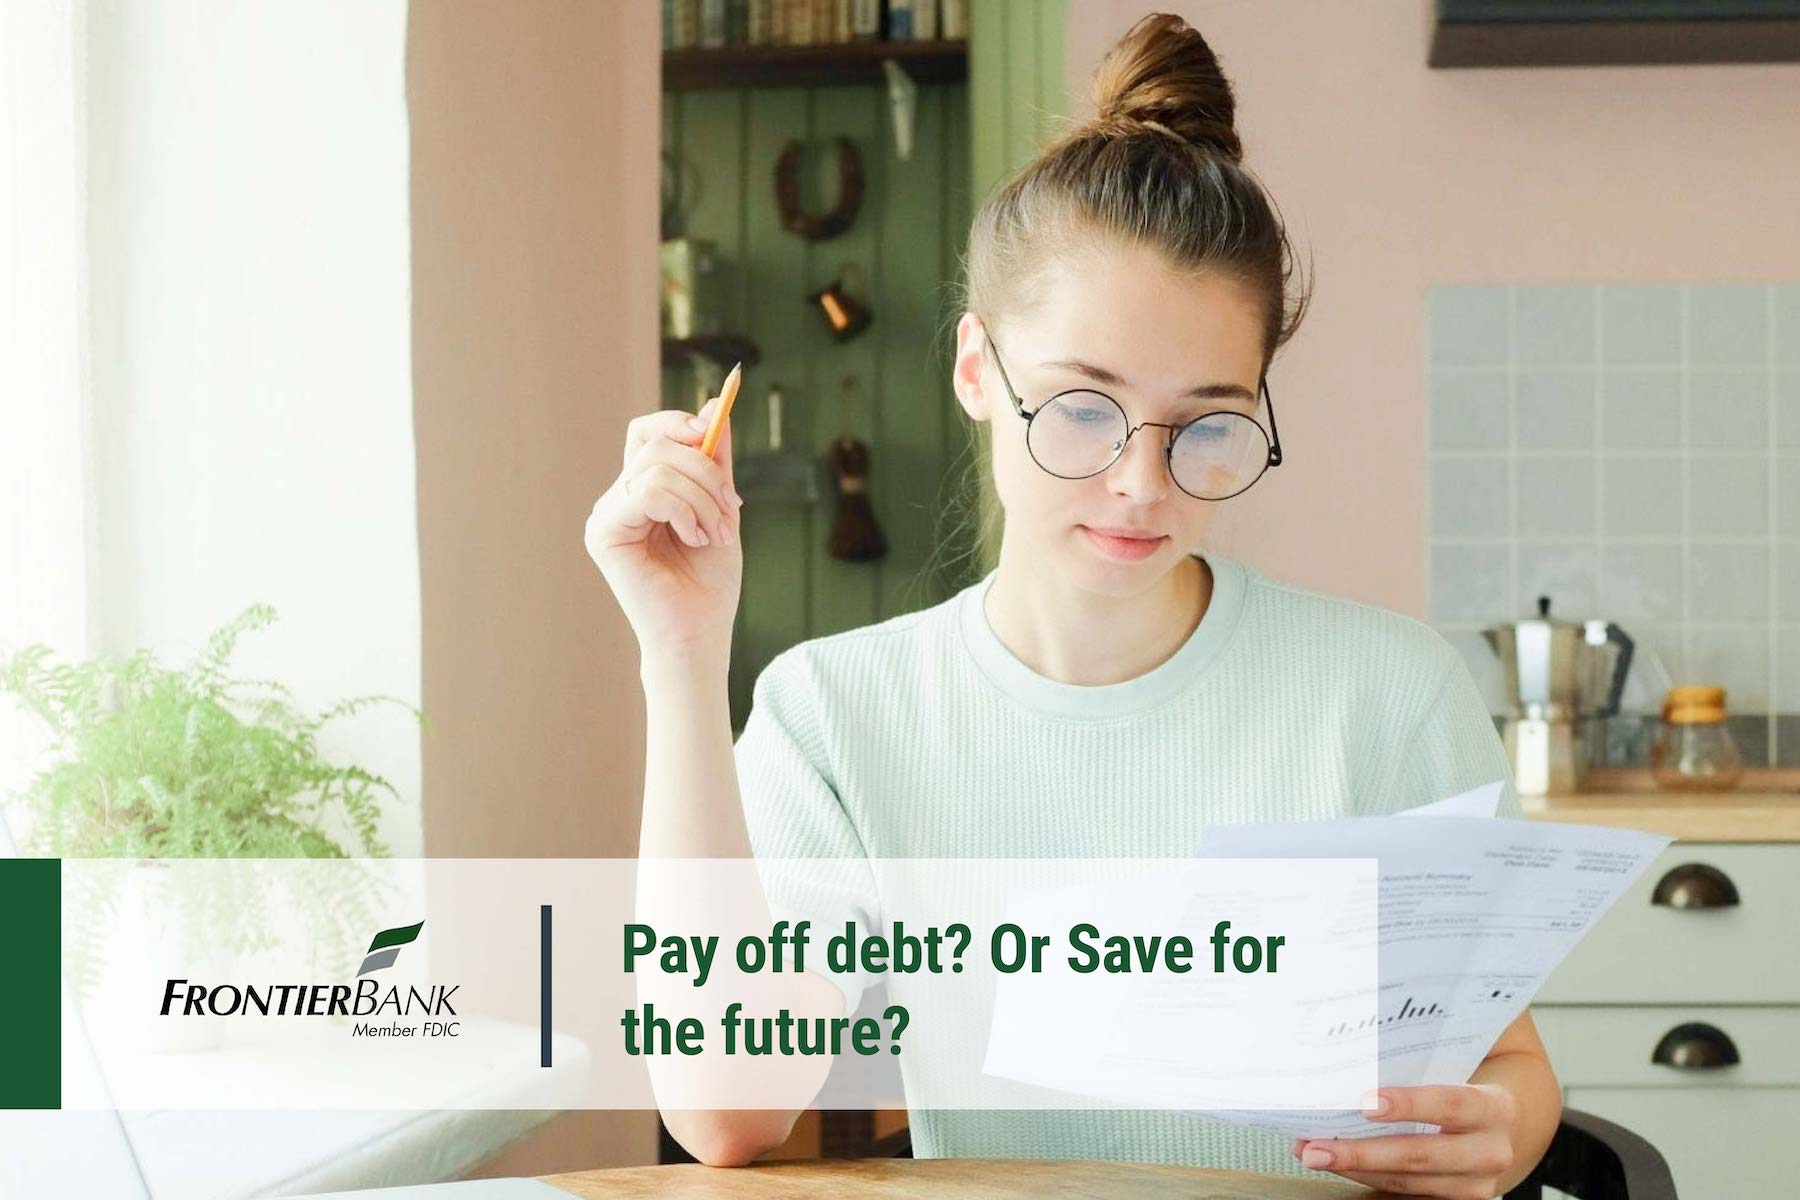 Pay off Debt or Save for the future